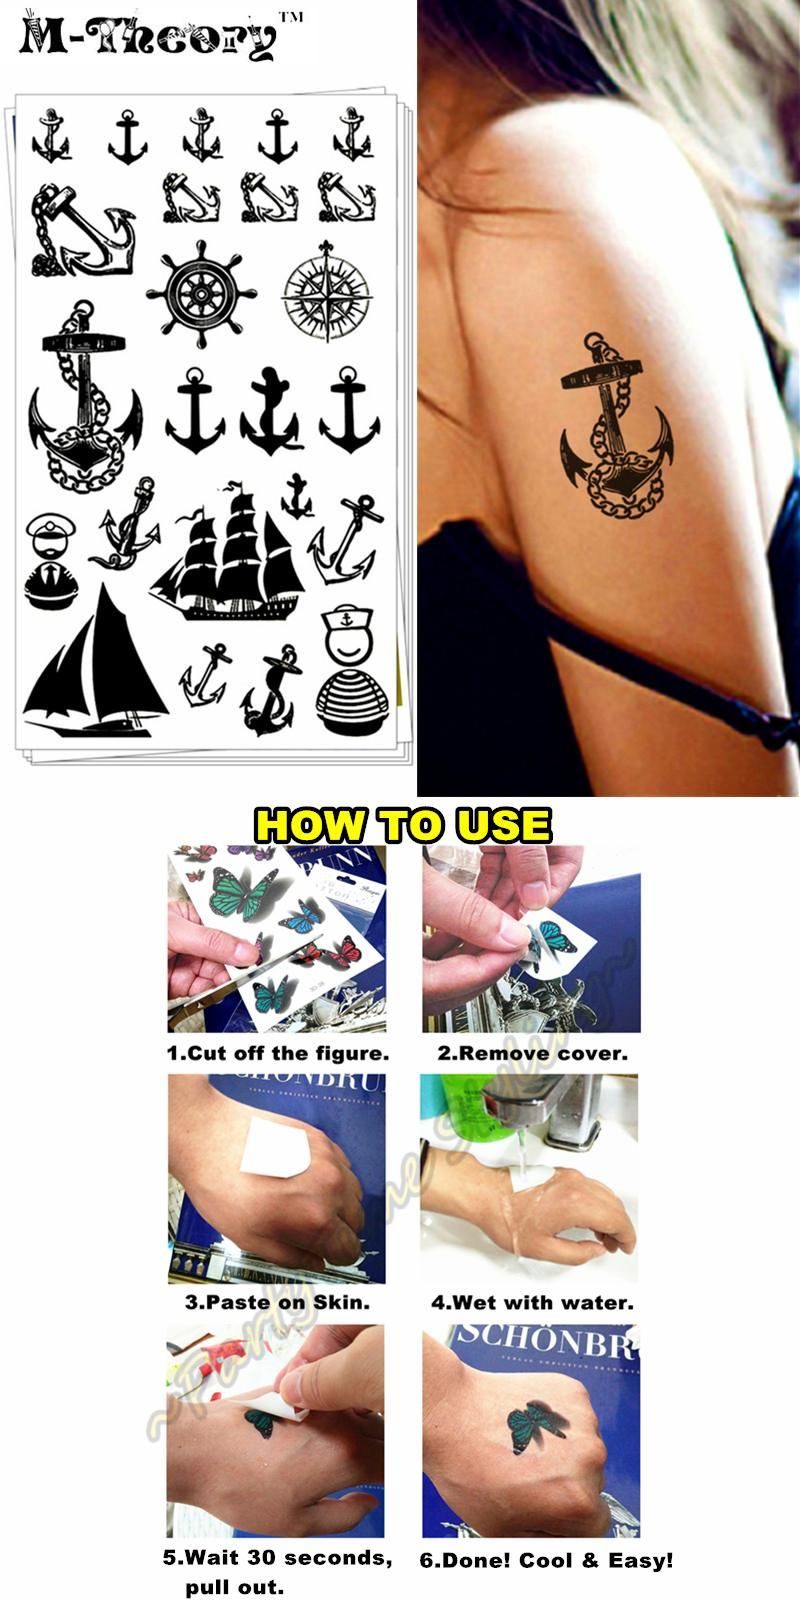 fa25e96505568 [Visit to Buy] M-theory Sexy Makeup Temporary 3d Tattoos Sticker Marine  Pirate Flash Tattoo Stickers Henna Tatto Swimsuit Makeup Tools  #Advertisement